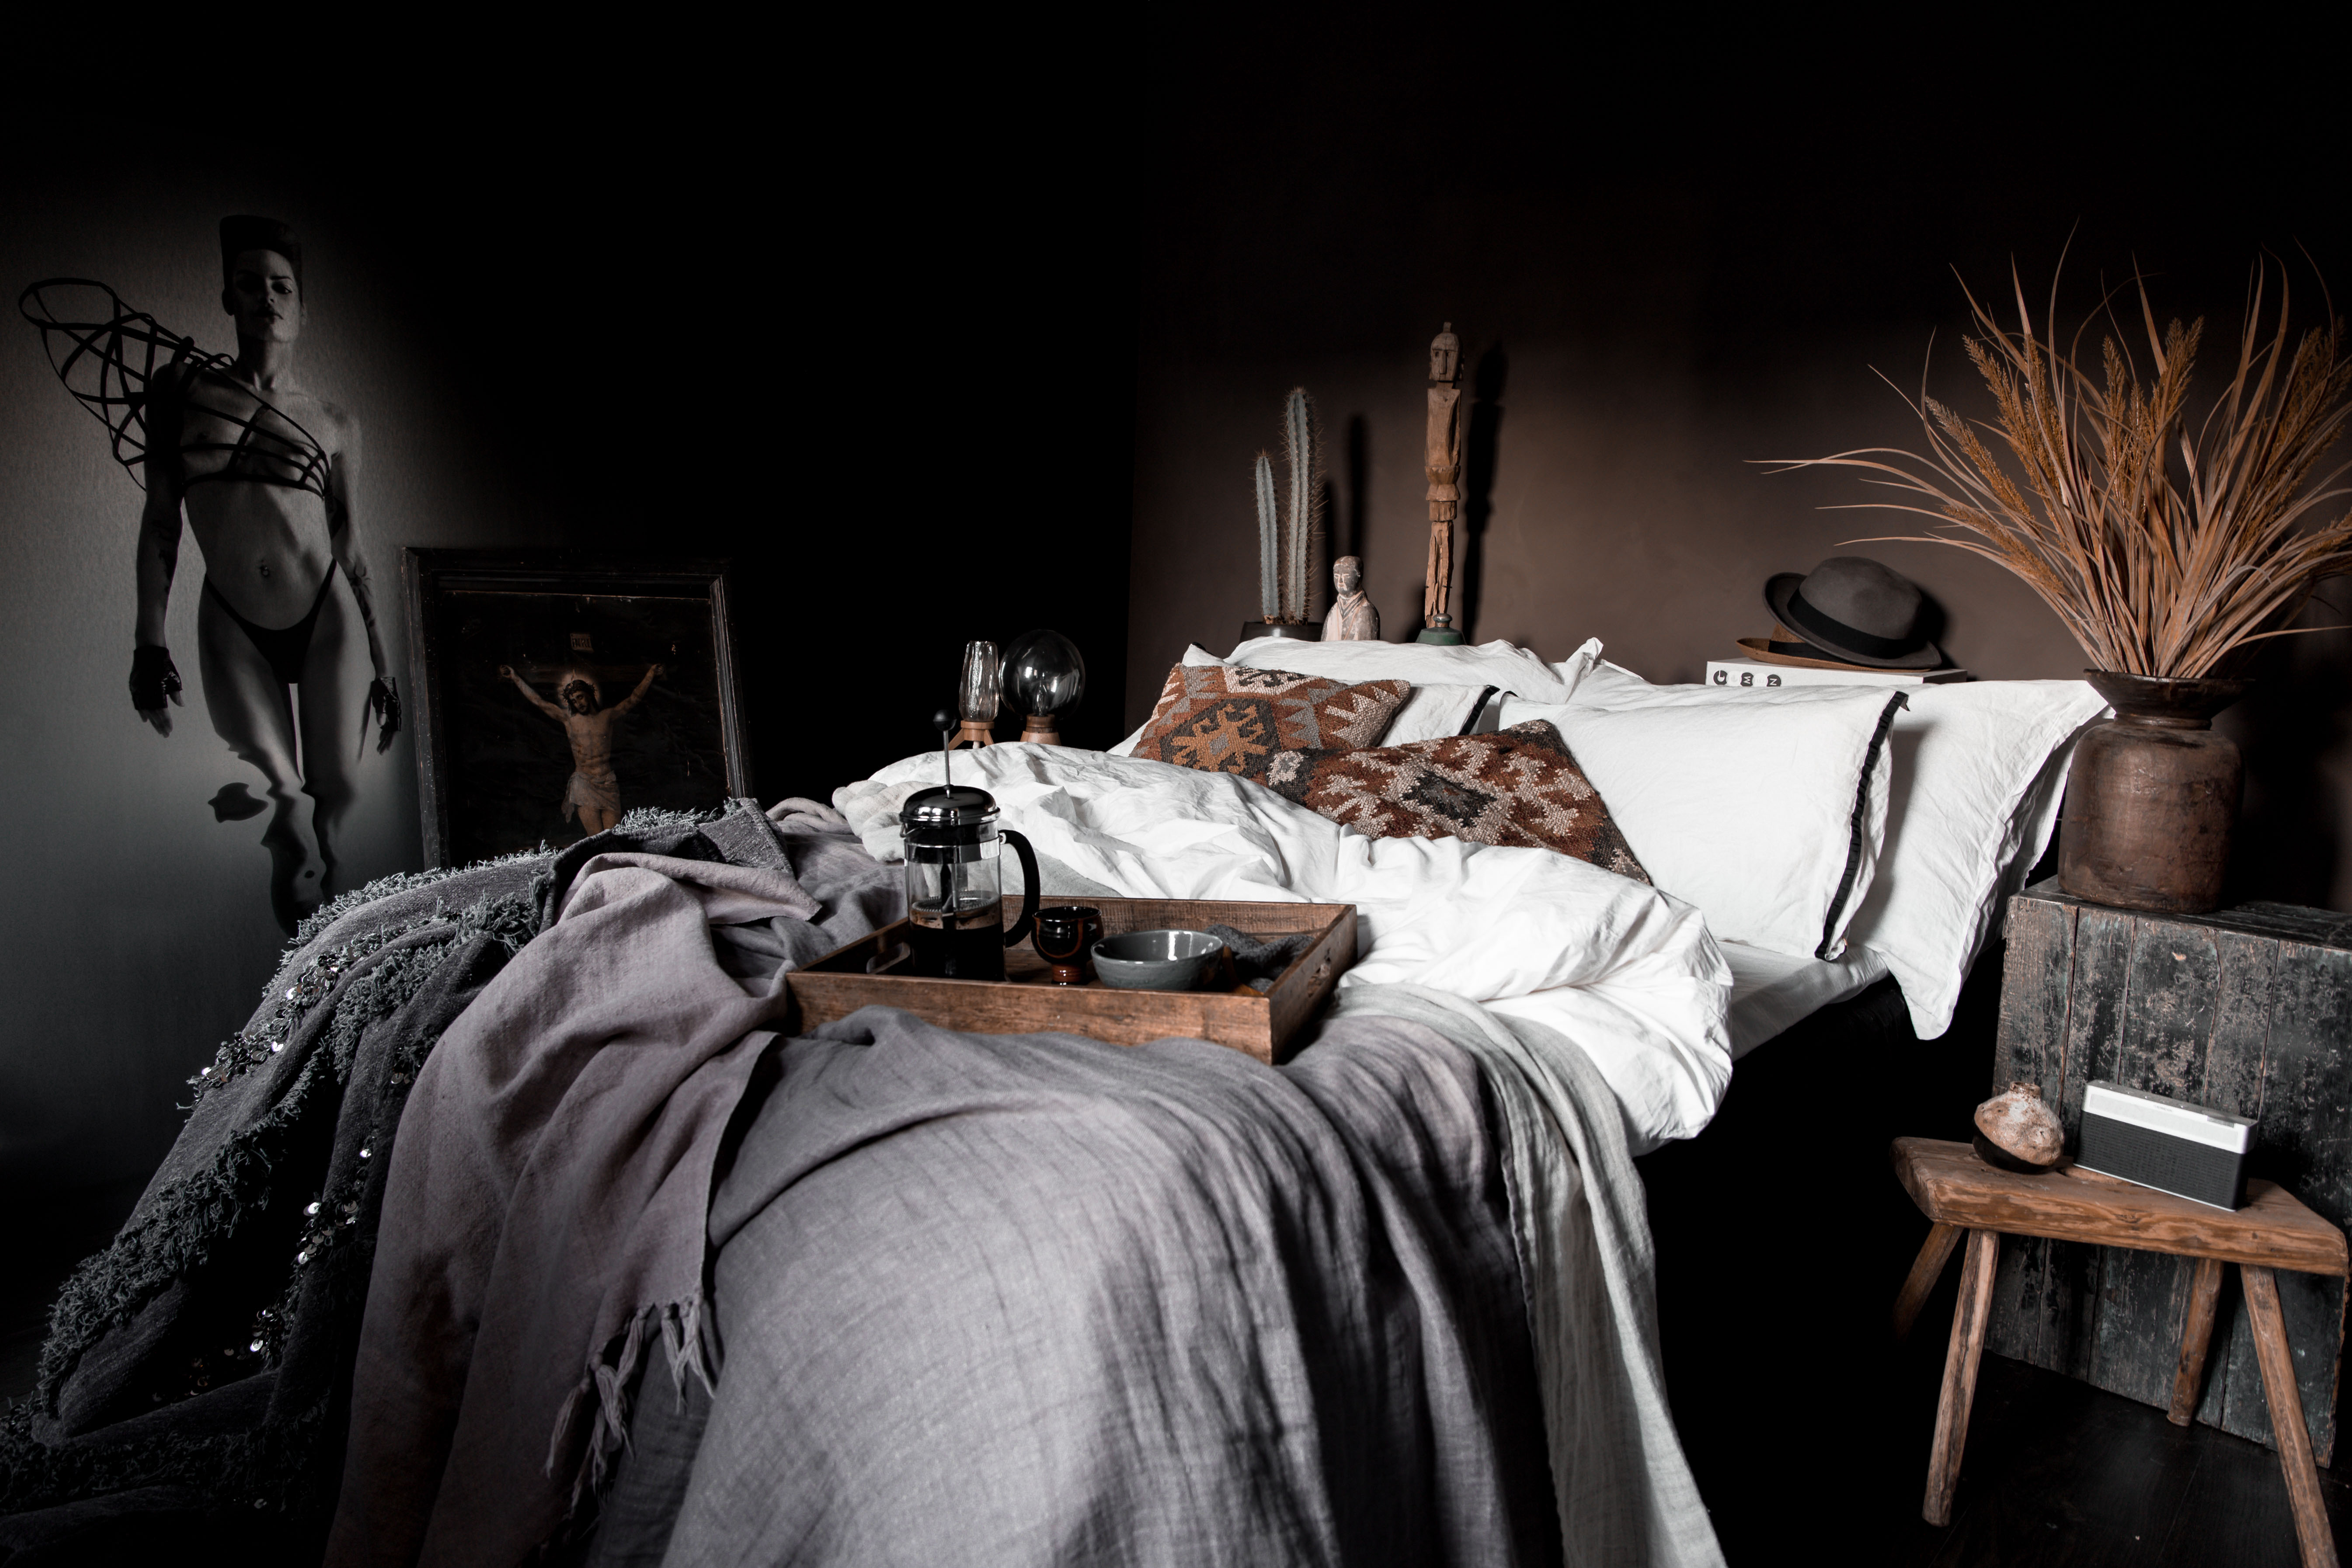 Another season – another bedroom